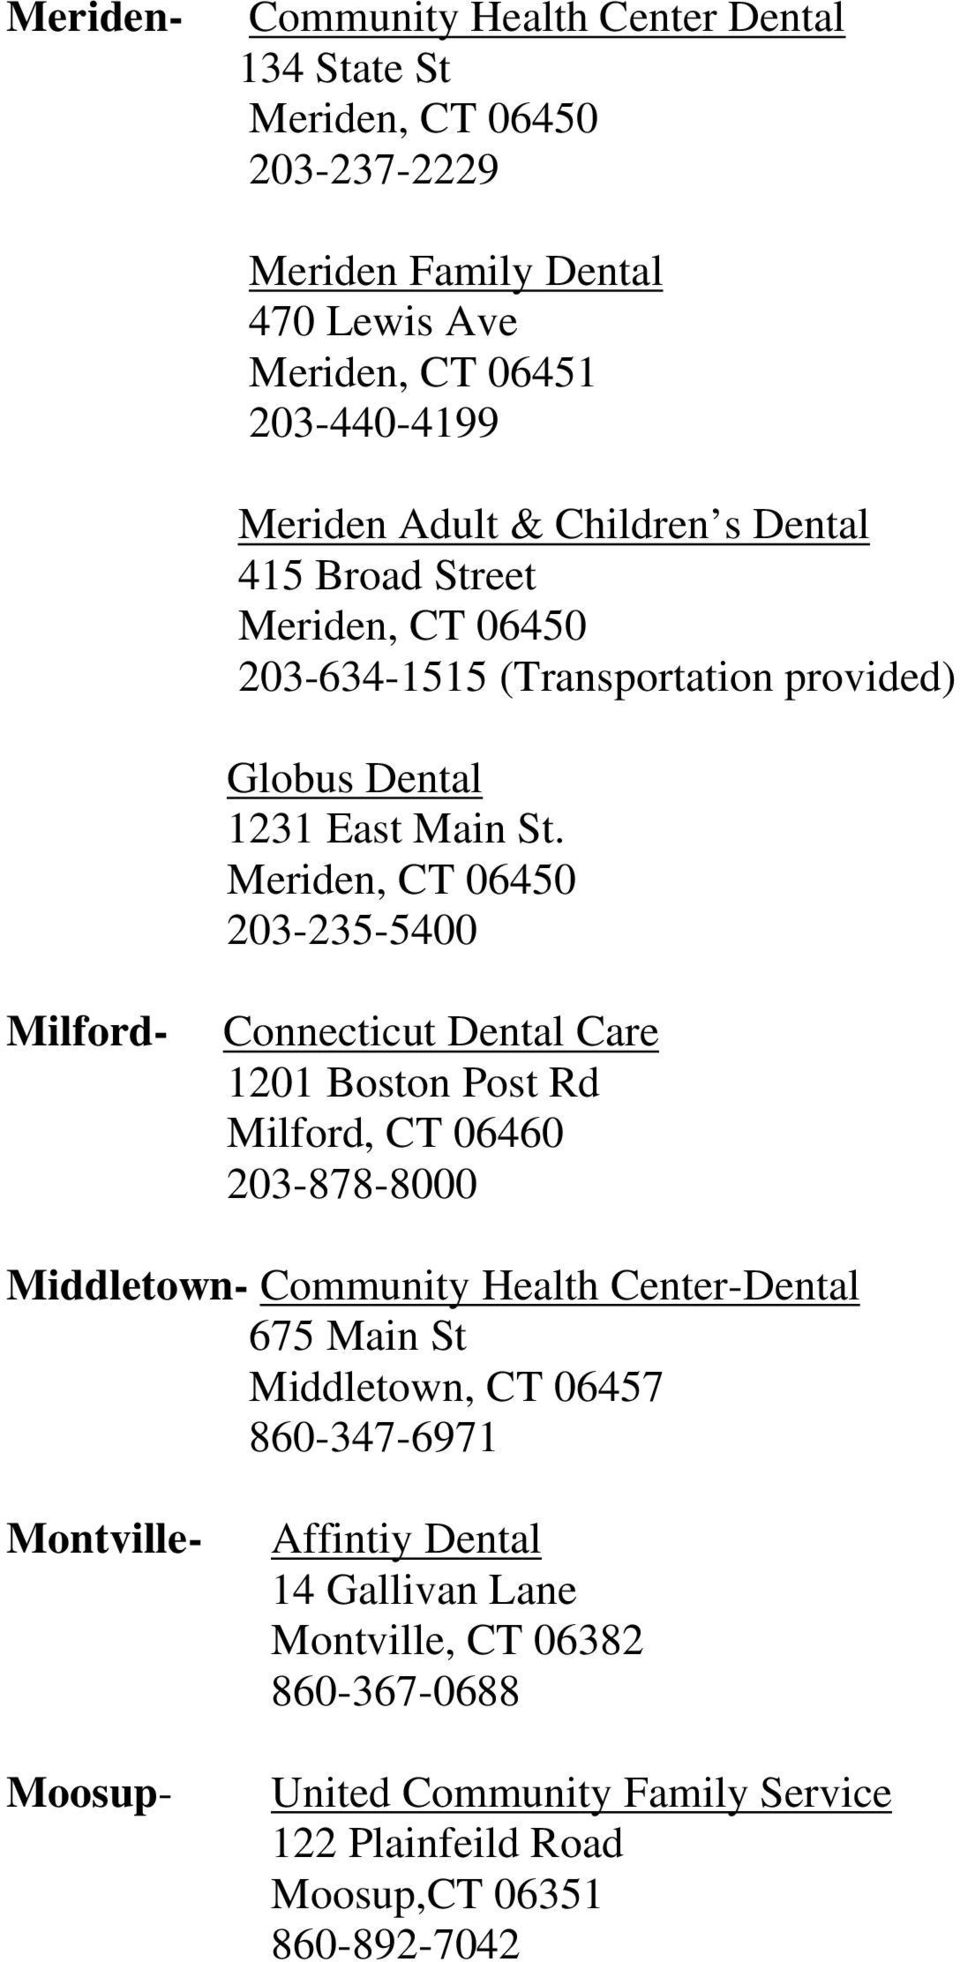 Meriden, CT 06450 203-235-5400 Milford- Connecticut Dental Care 1201 Boston Post Rd Milford, CT 06460 203-878-8000 Middletown- Community Health Center-Dental 675